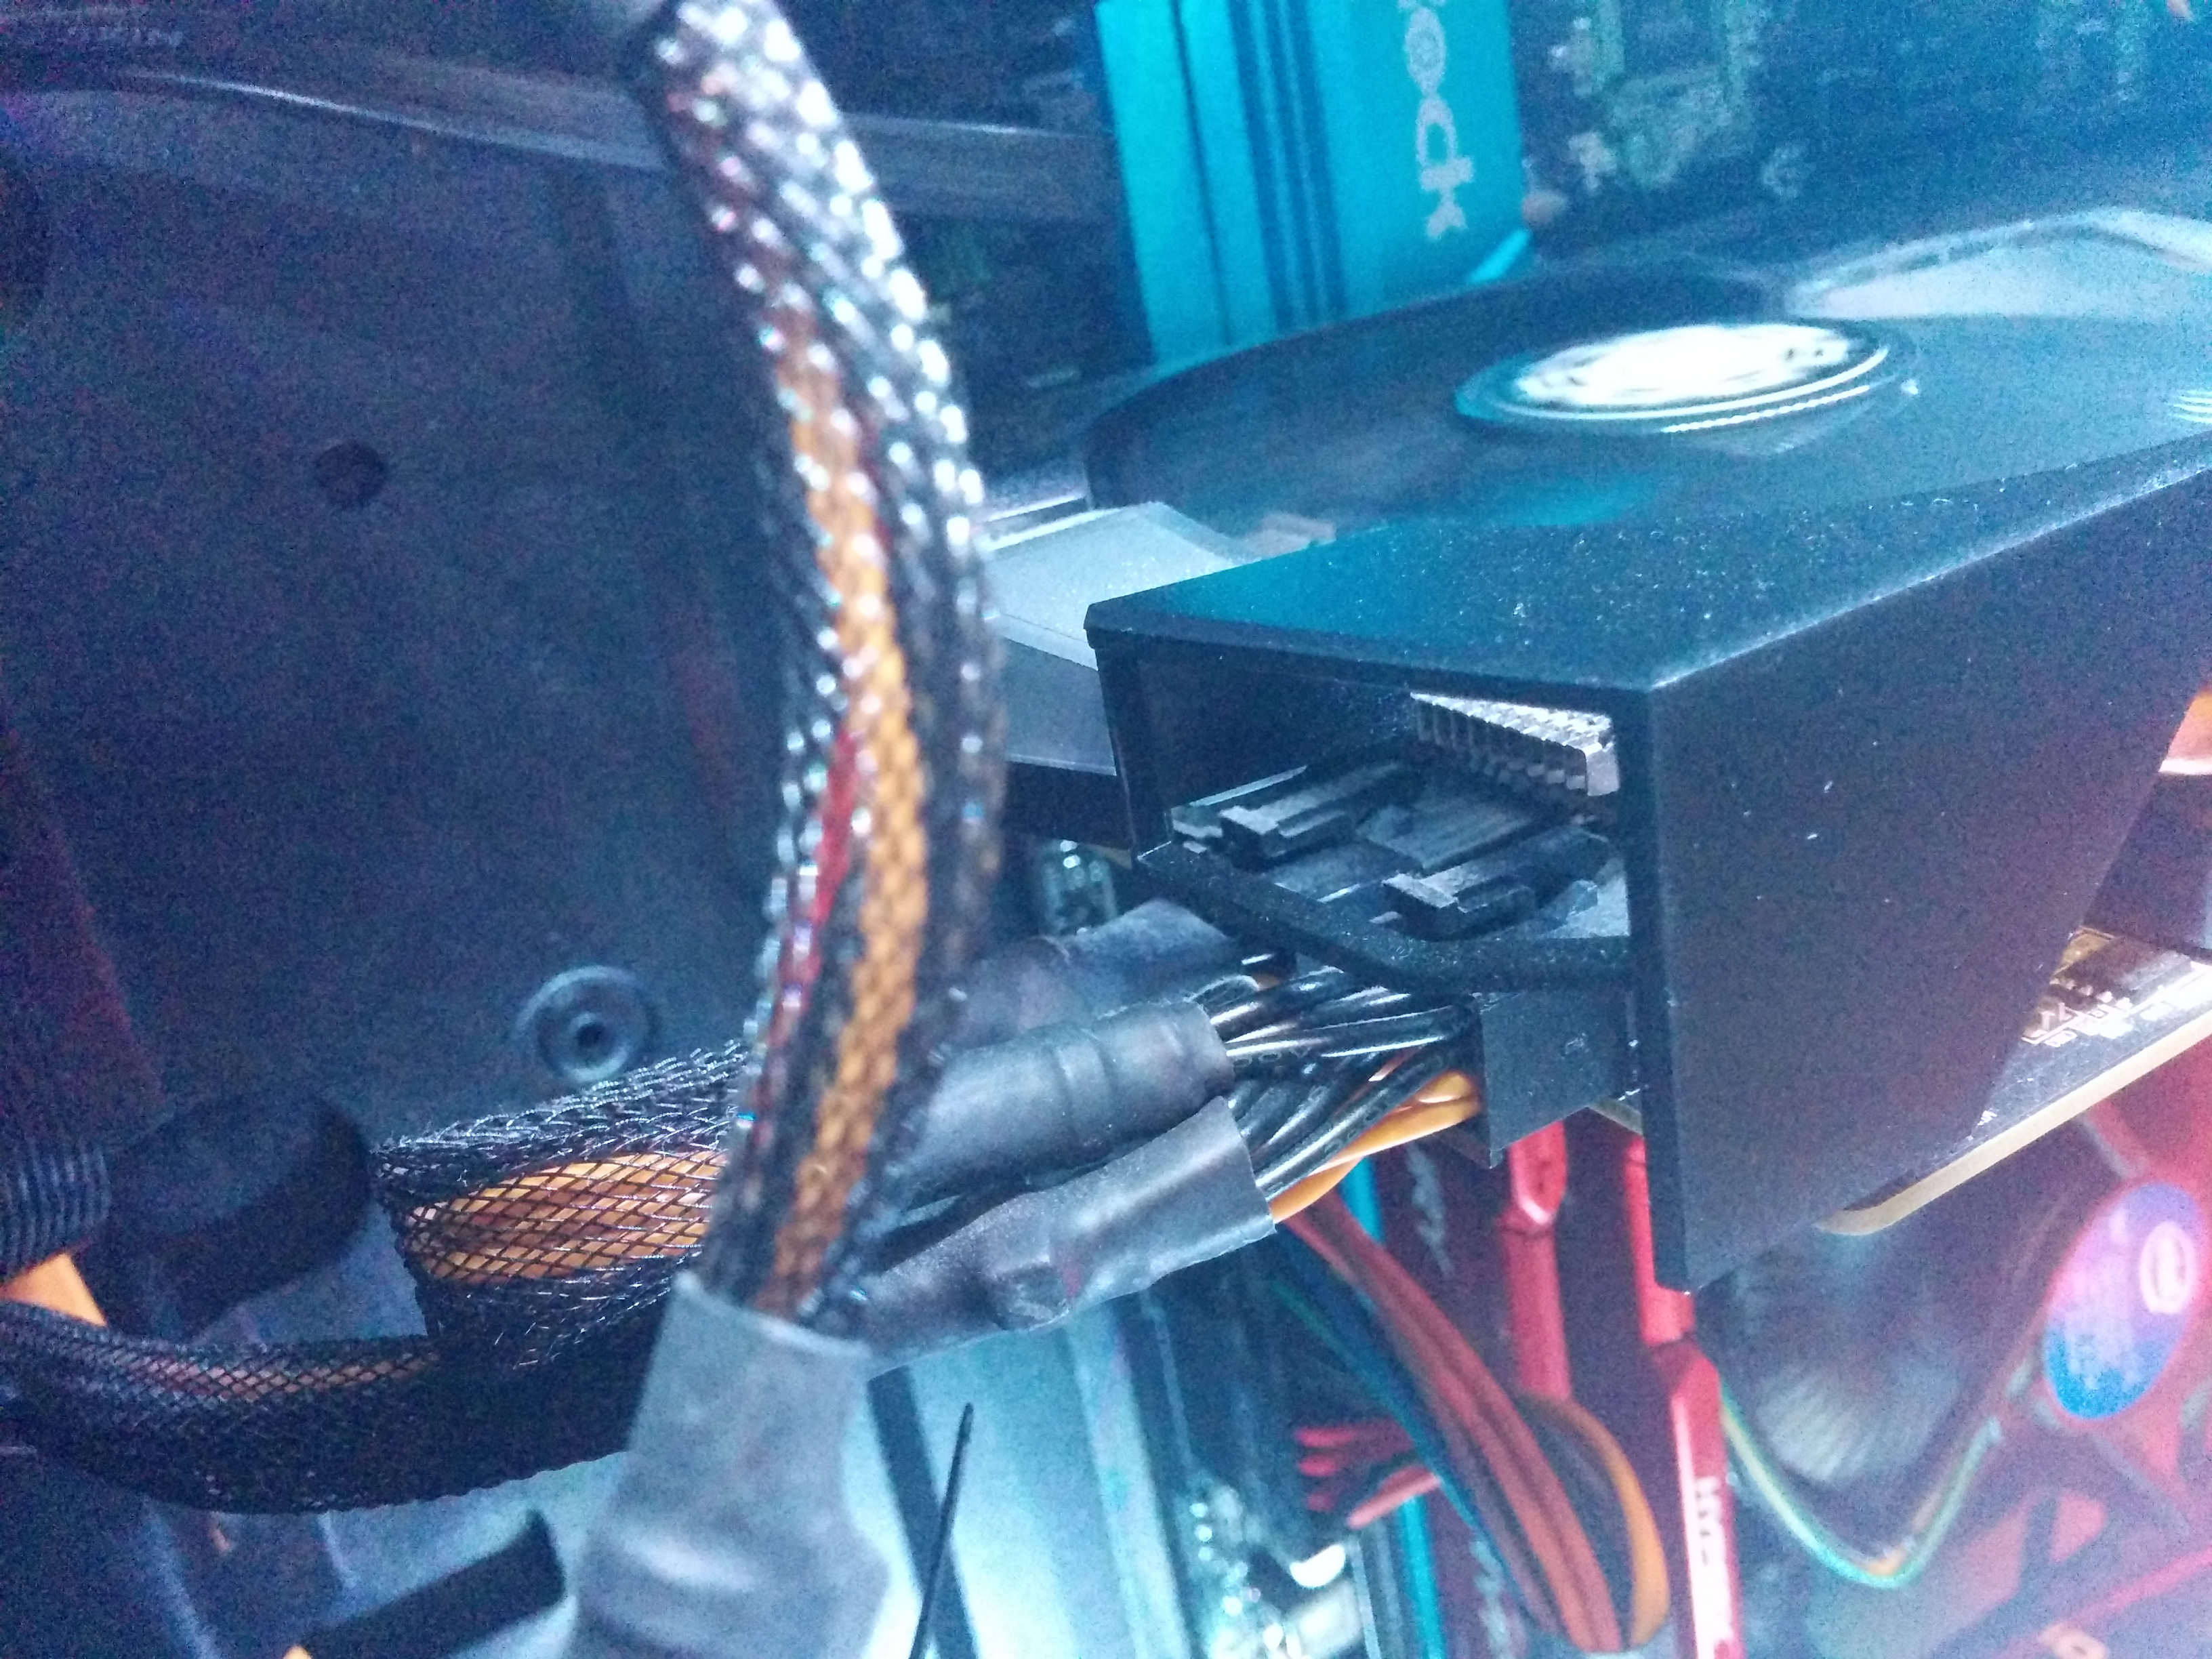 New video card, but wrong pins? - Cases and Power Supplies - Linus ...